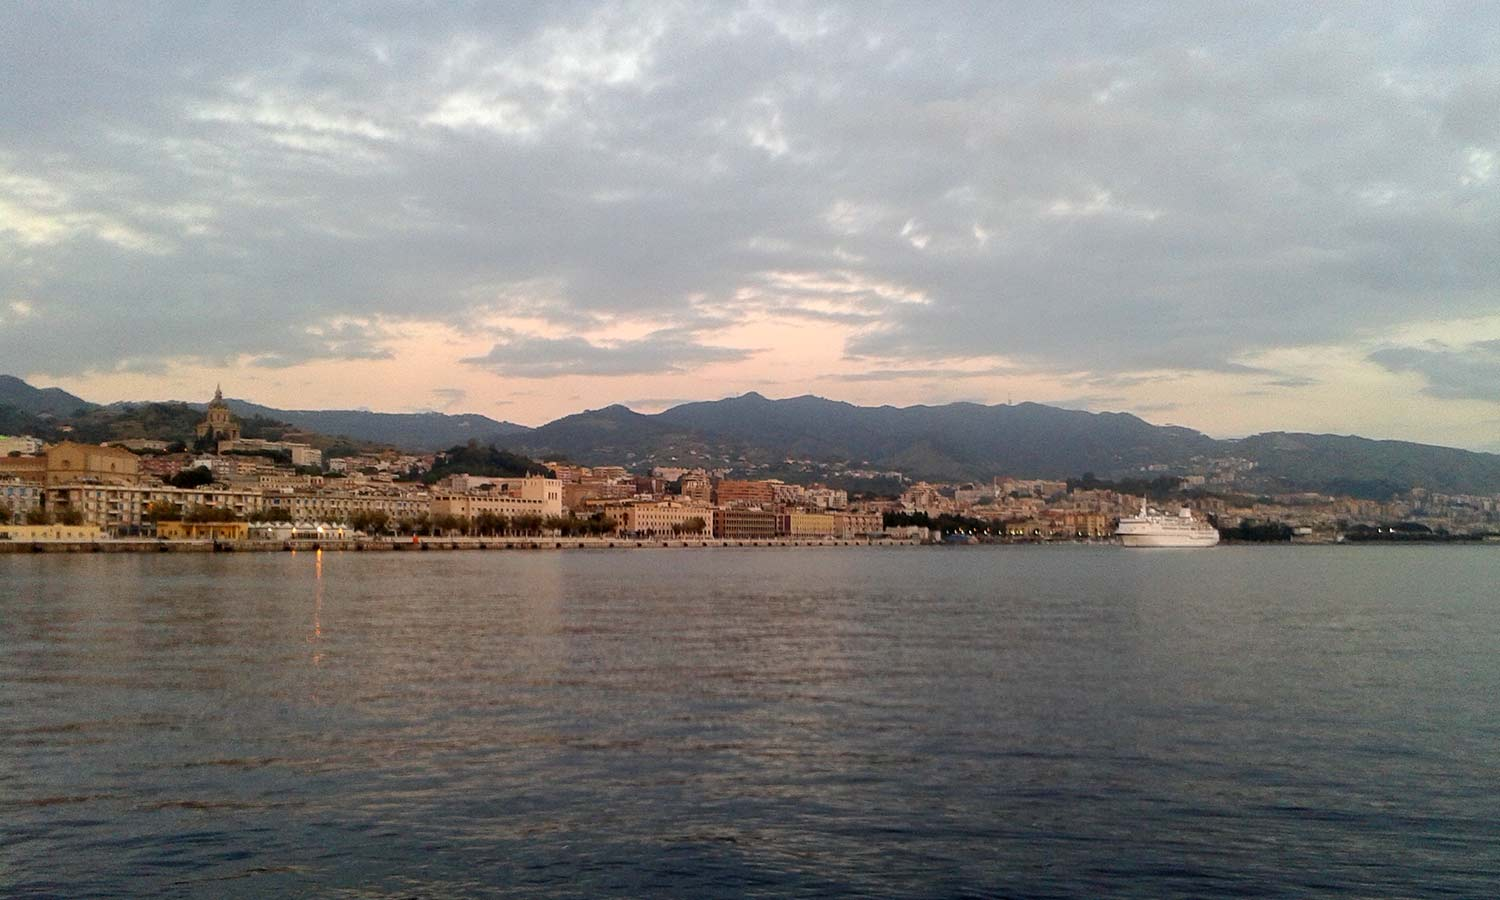 Messina from the harbour.